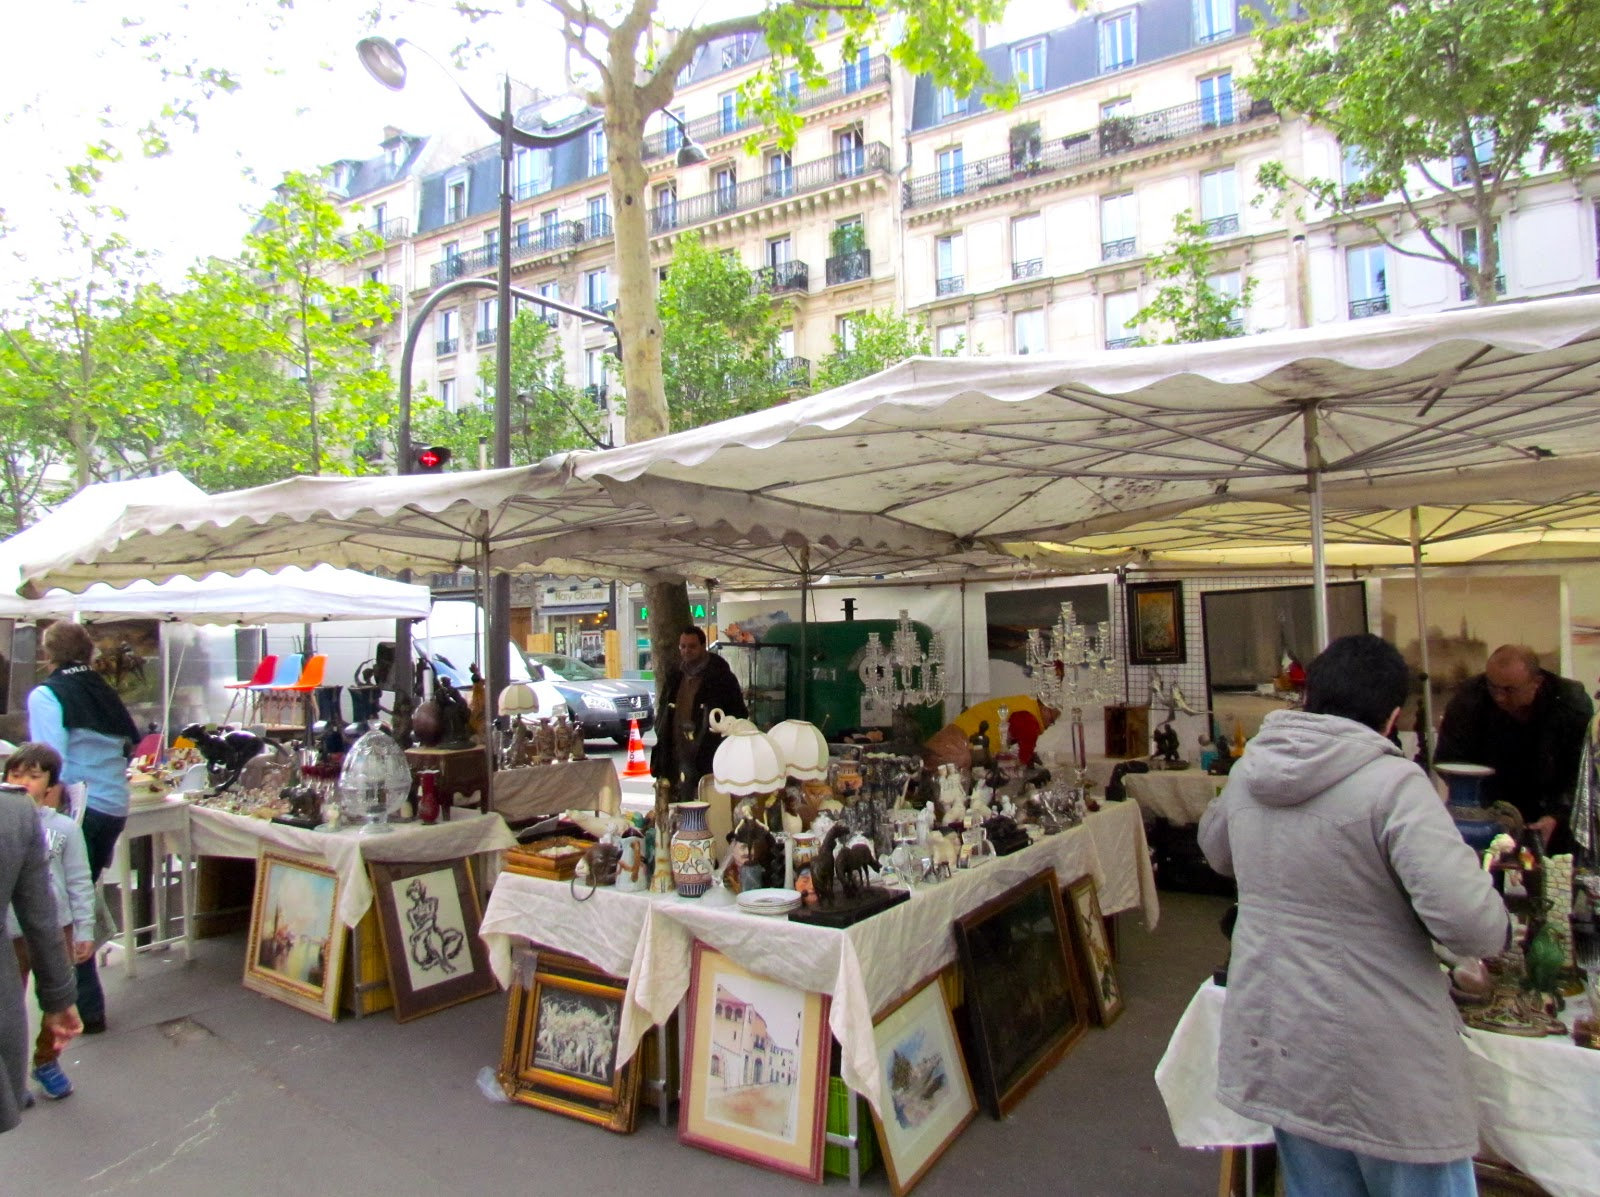 Brocante A Paris A Saturday Brocante In Paris